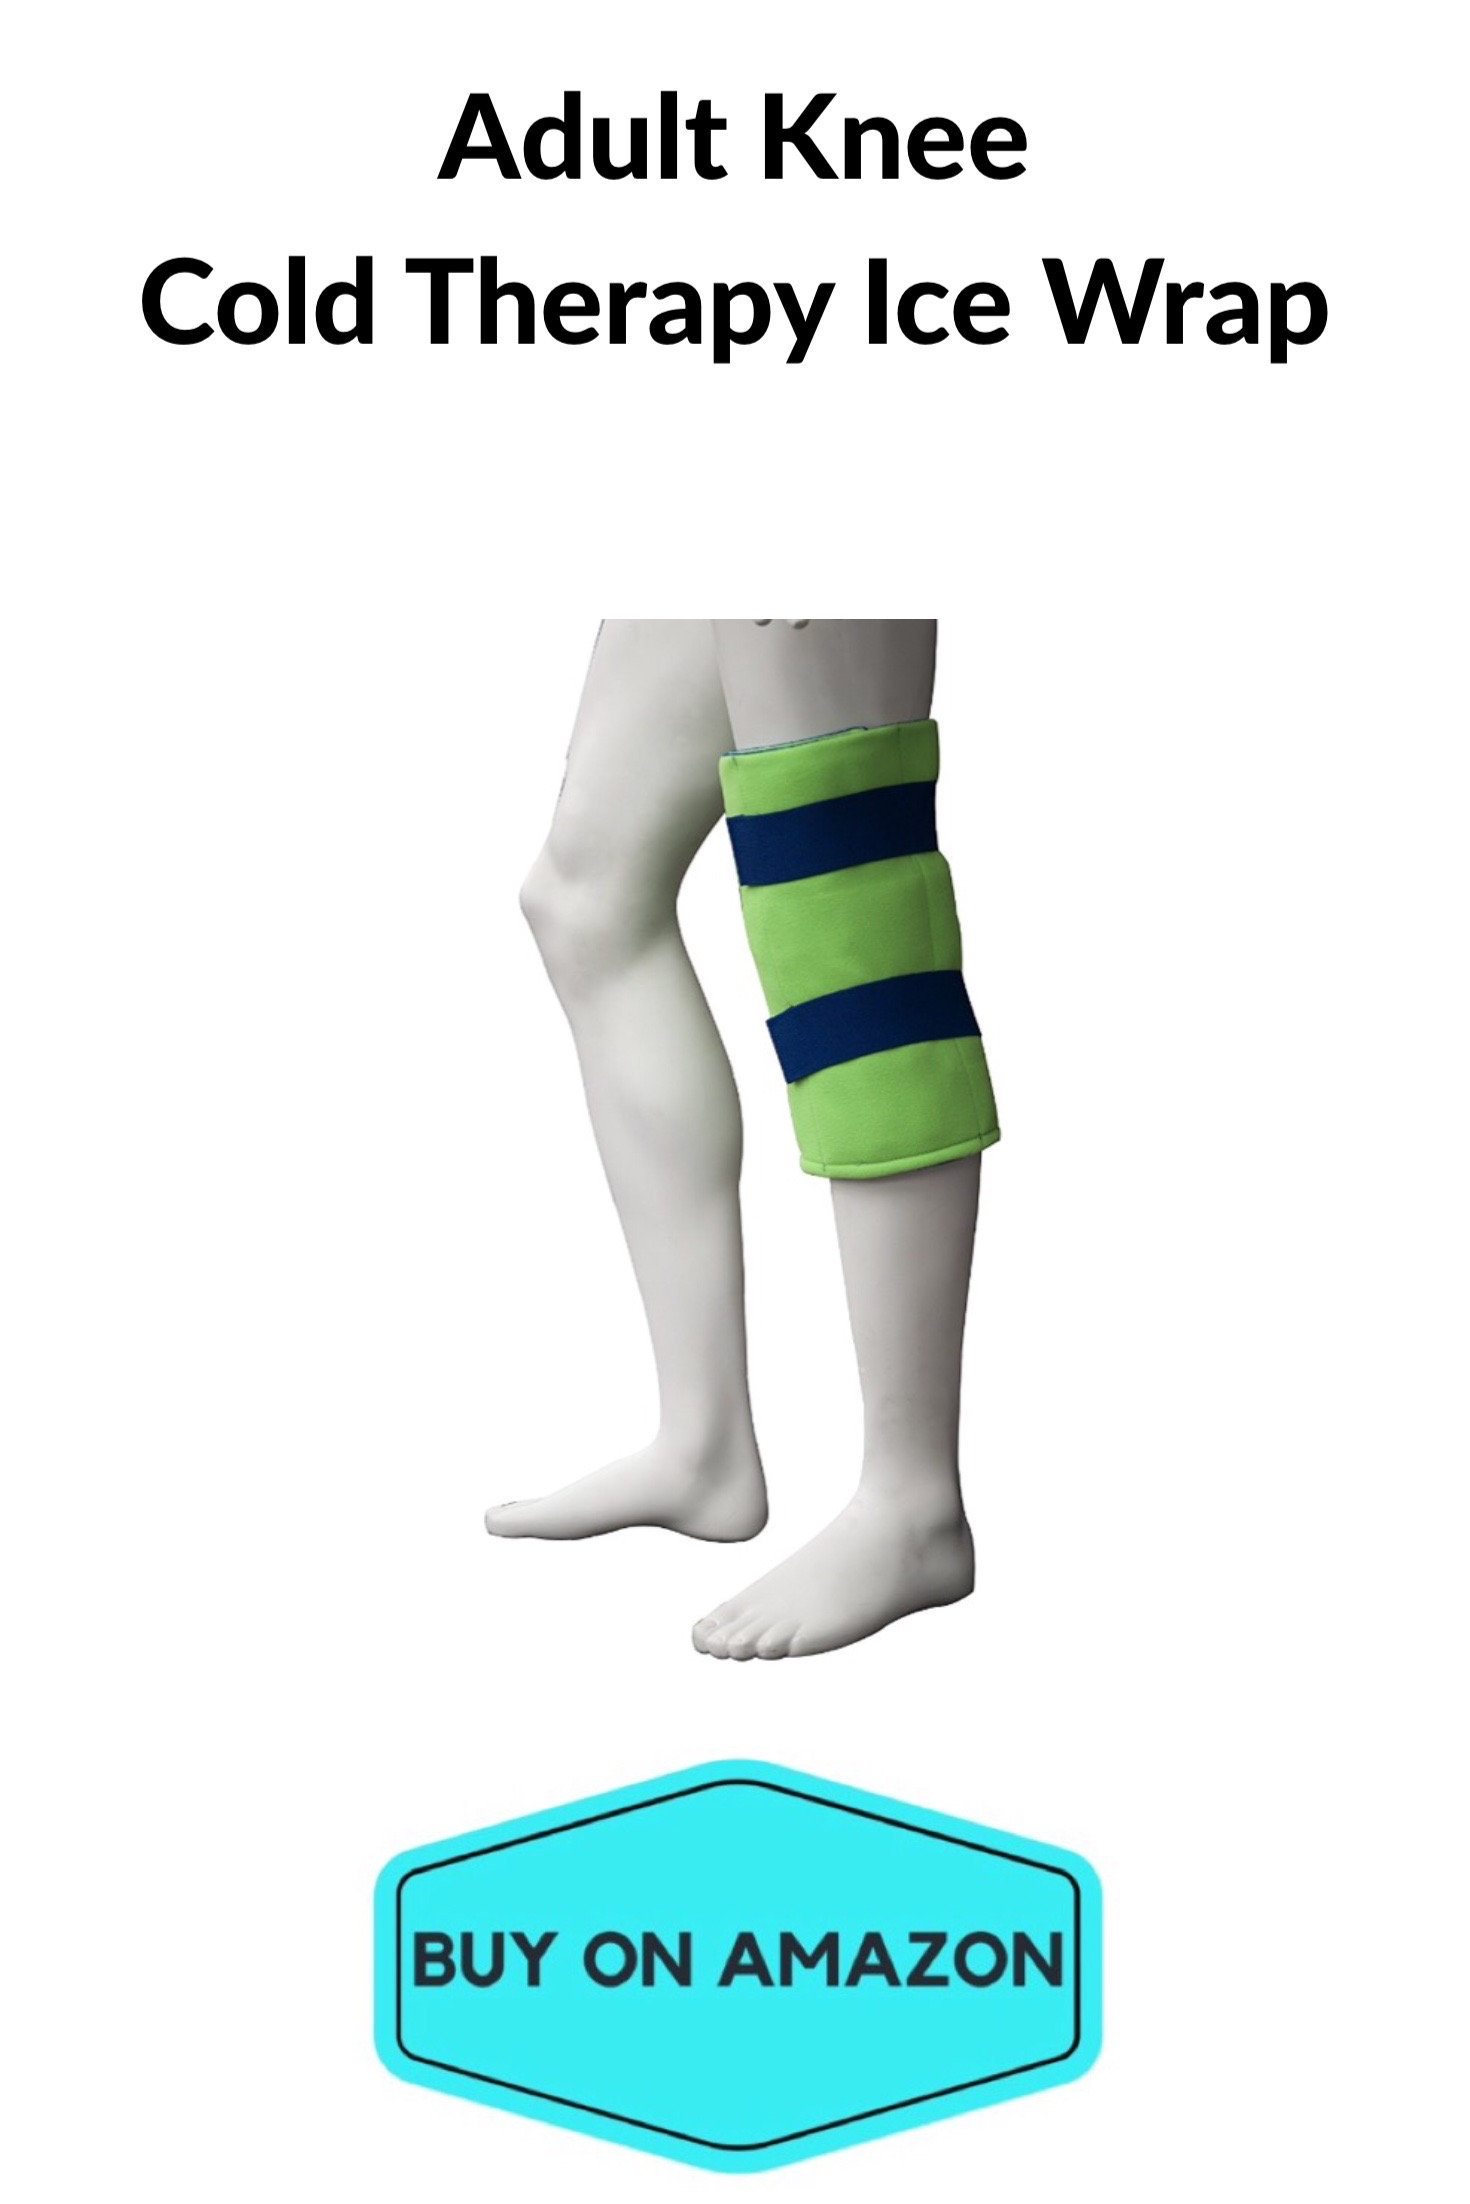 Knee Cold Therapy Ice Wrap